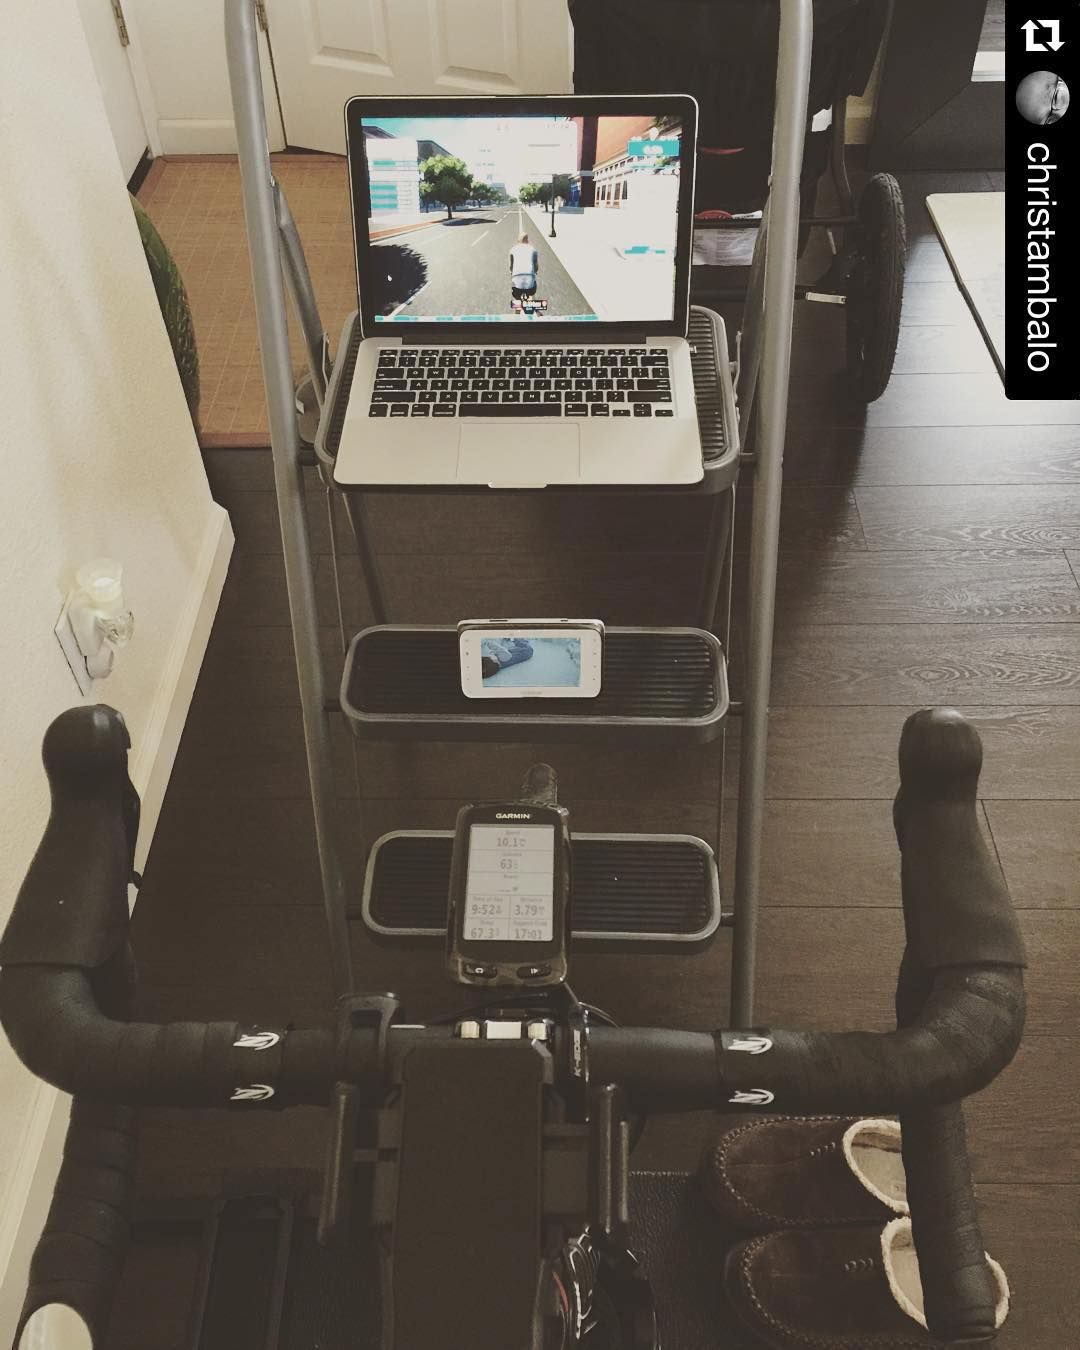 Chair Gym Setup Kirklands Christmas Covers Ingenious Zwift Set Up Repost Christambalo With Repostapp Daddy Duty